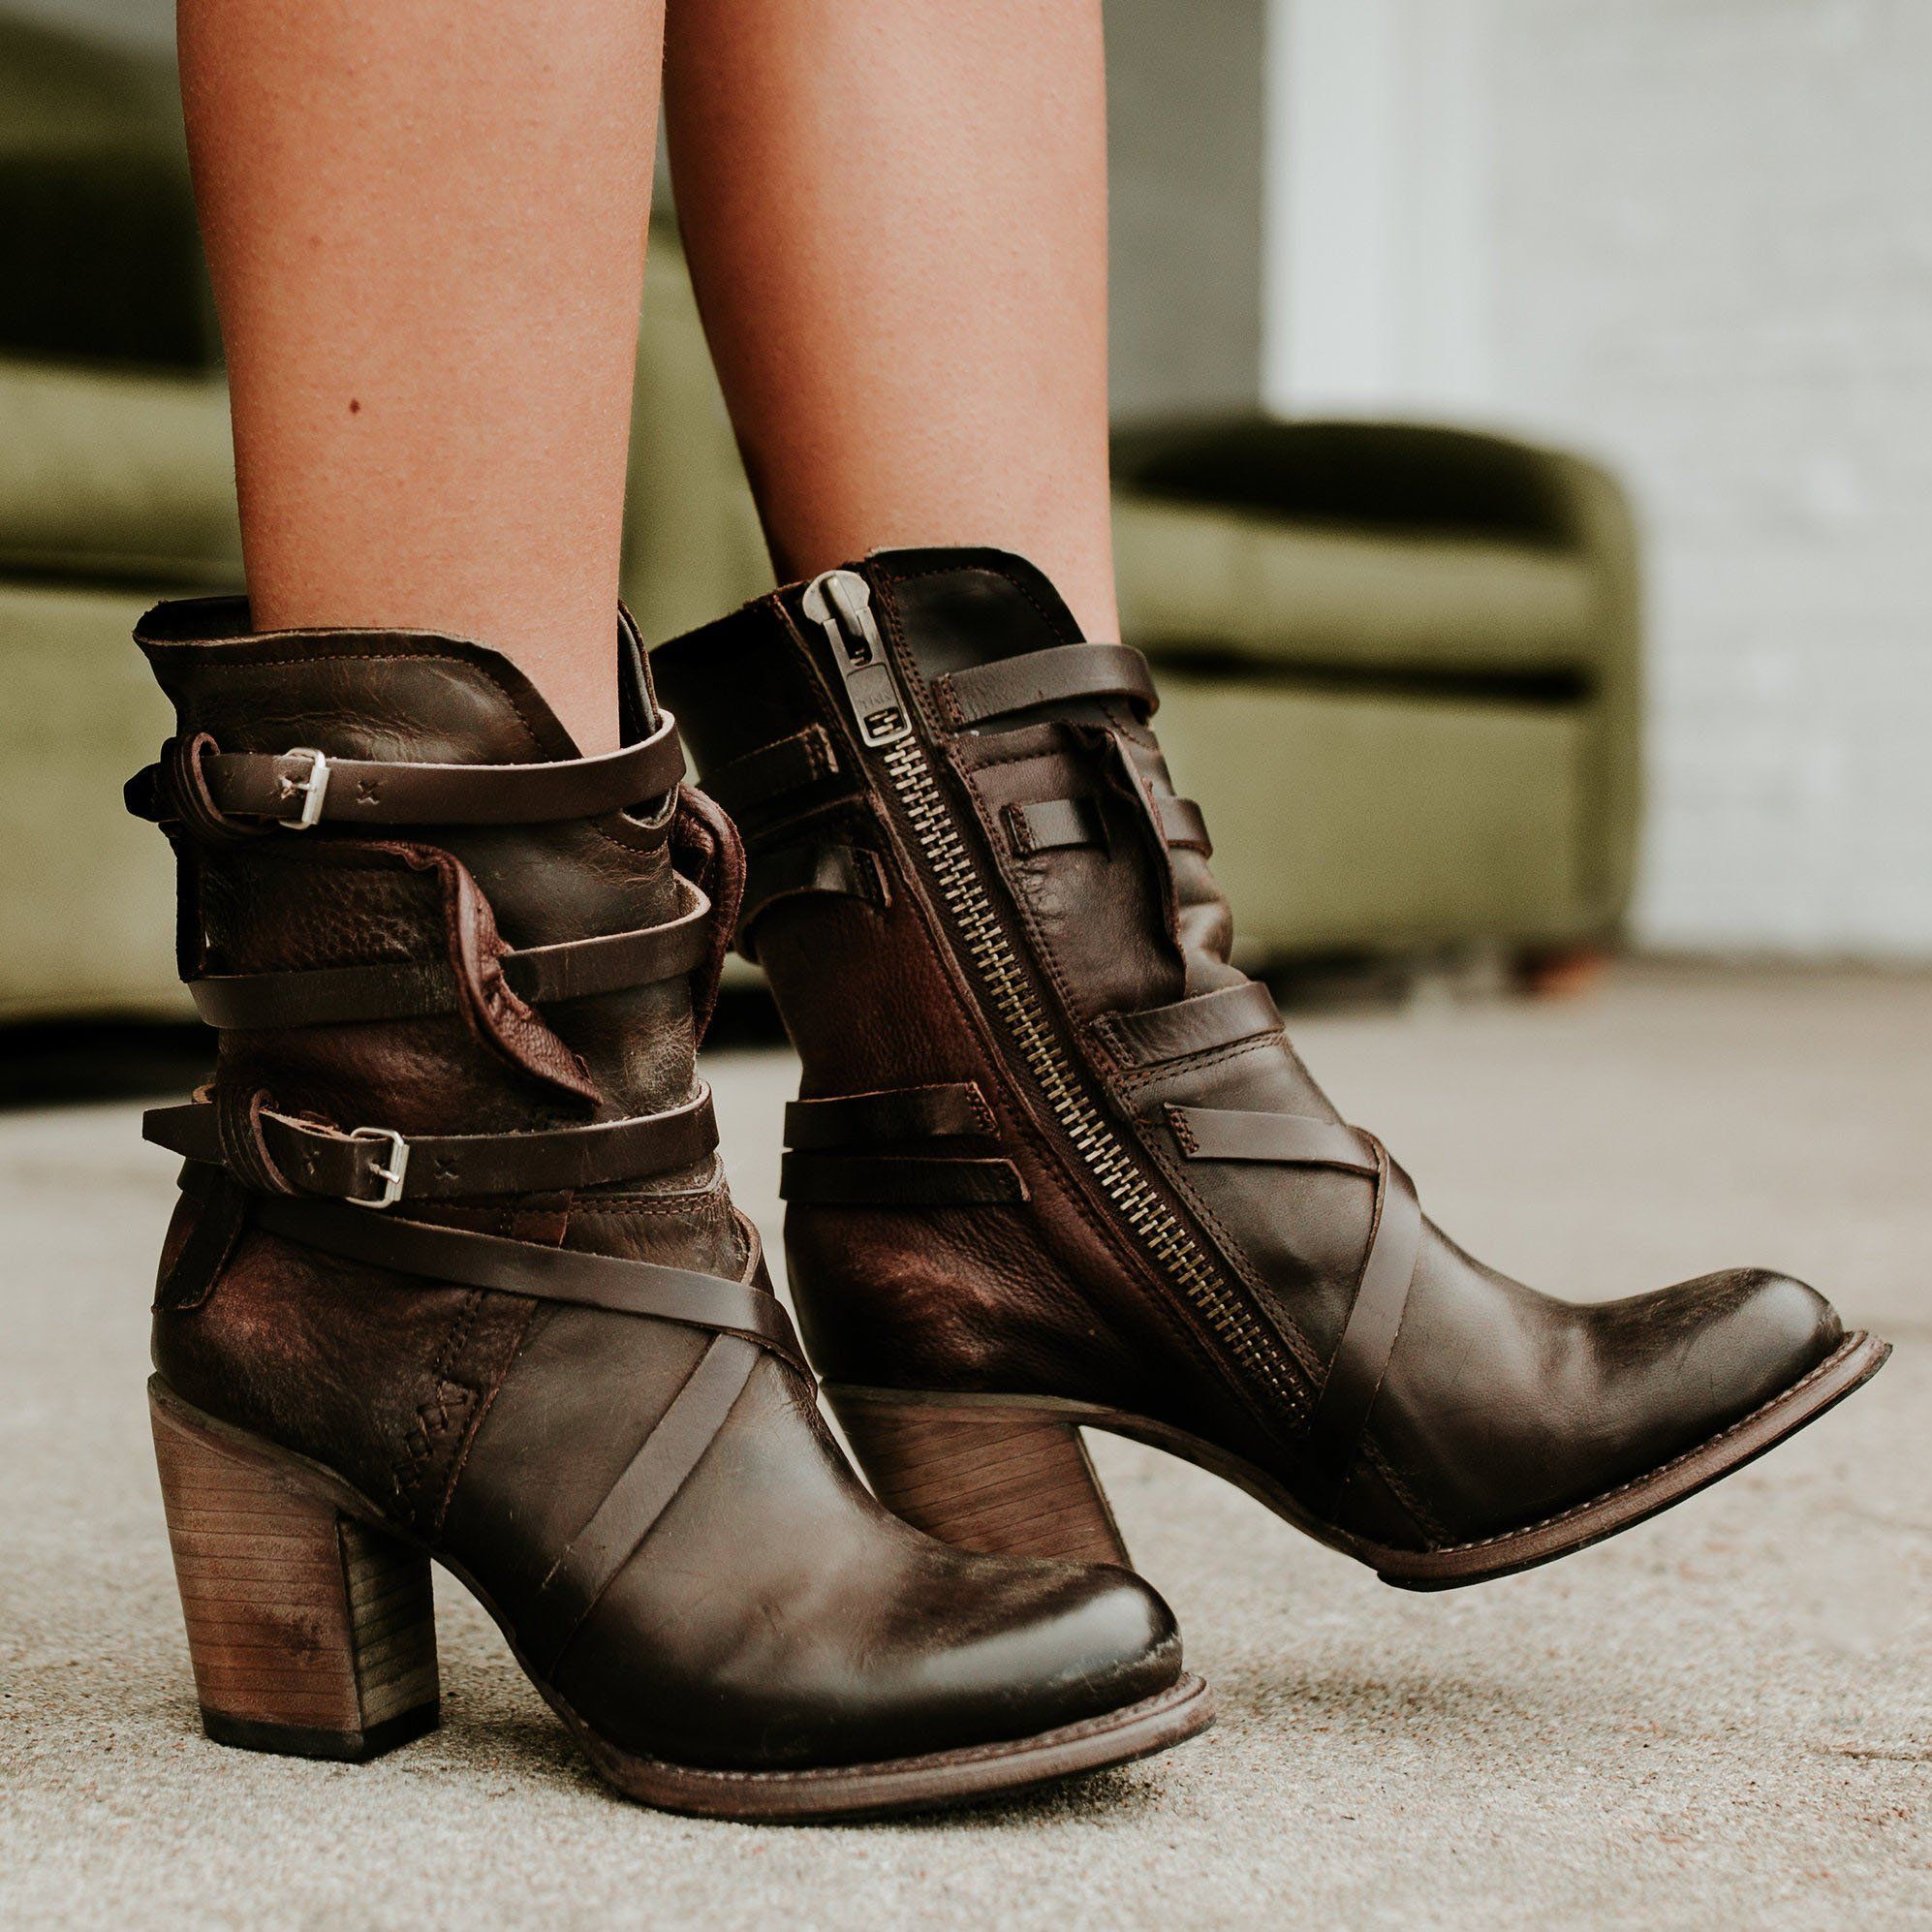 Baker In 2019 To Wear Boots Shoe Boots Shoes